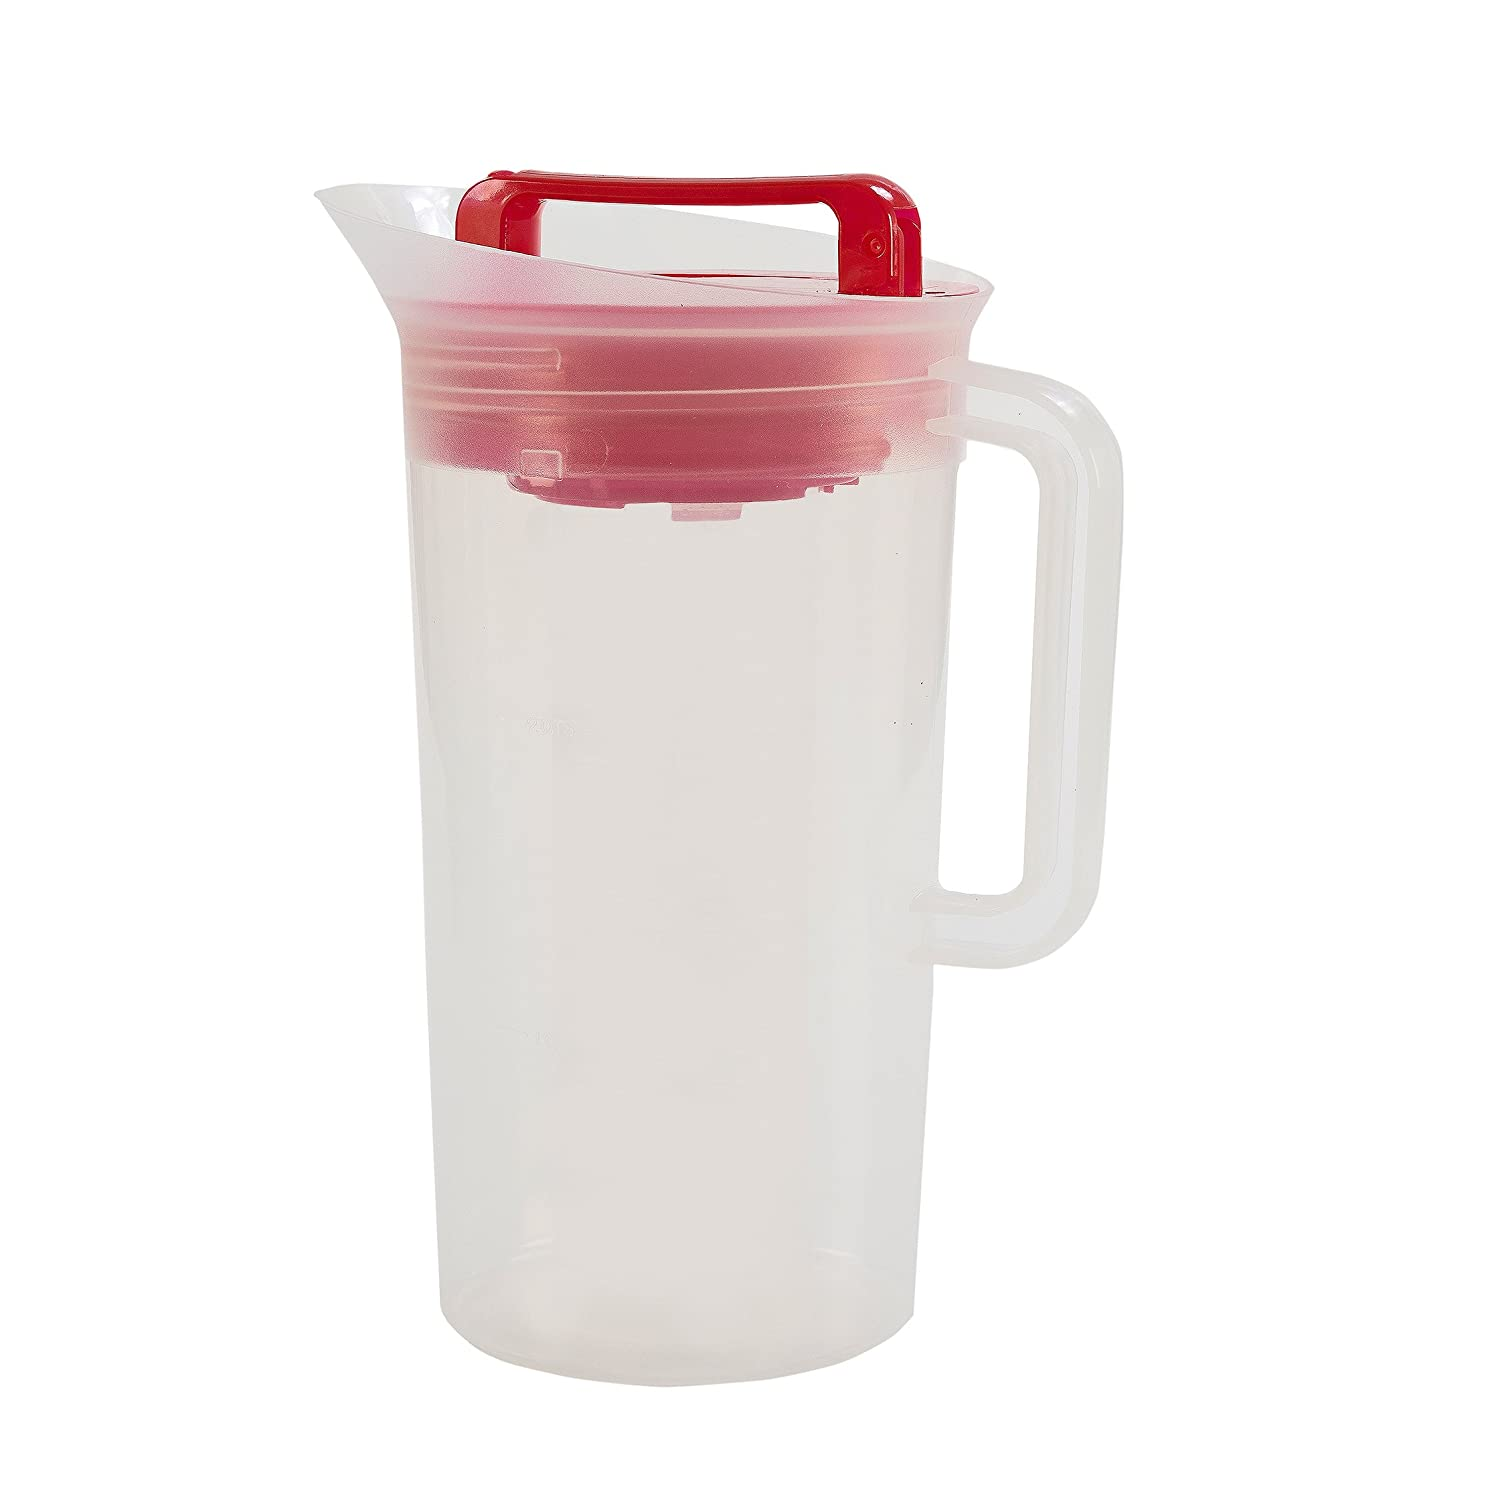 Primula TSIRE-3630 Today Shake and Infuse Pitcher, 8.2 x 6.4 x 11.1 inches Red